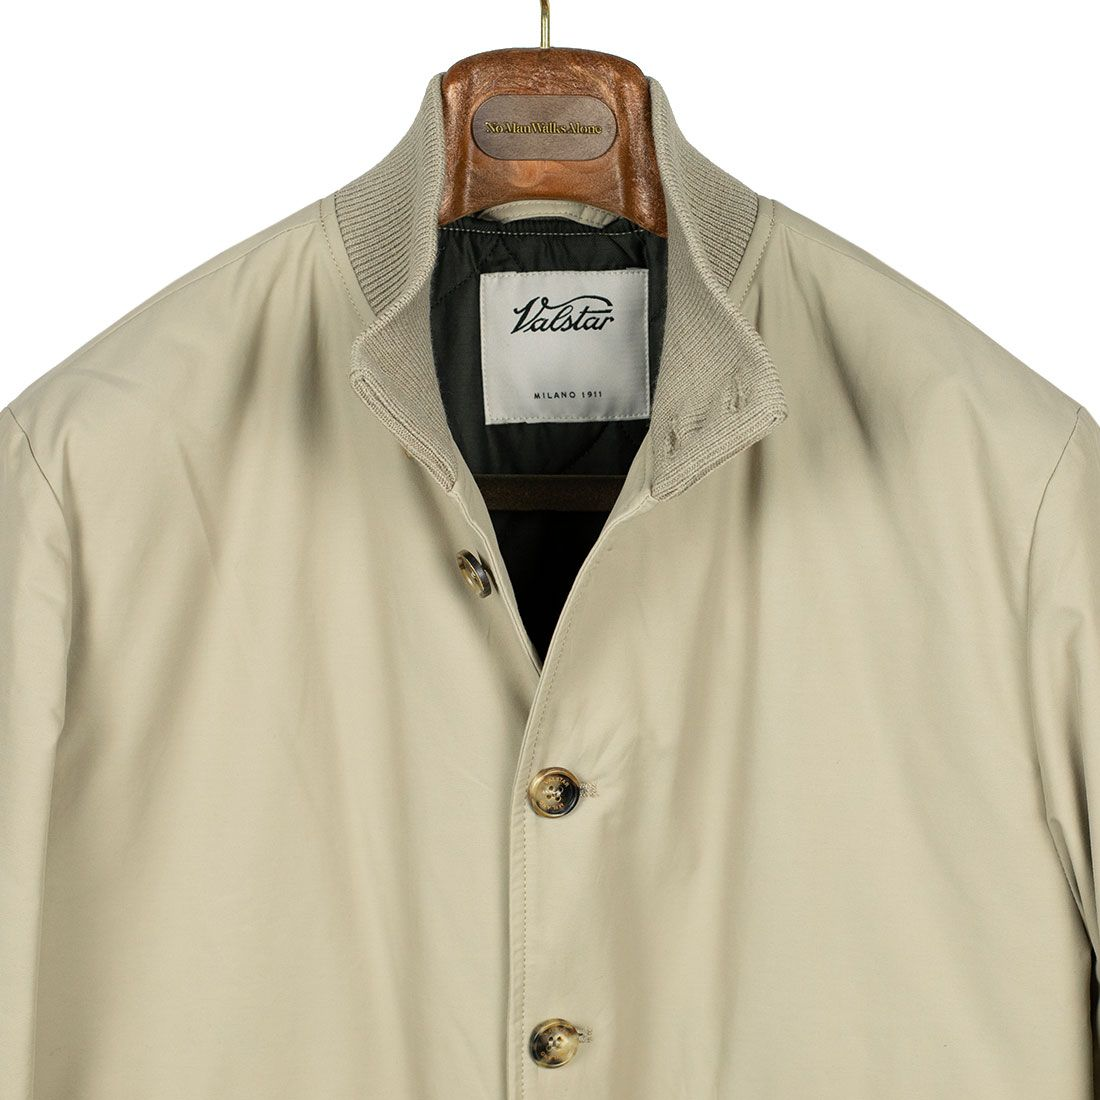 20201124 NMWA Valstar Beige cotton nylon light-filled Valstarino jacket 09.jpg